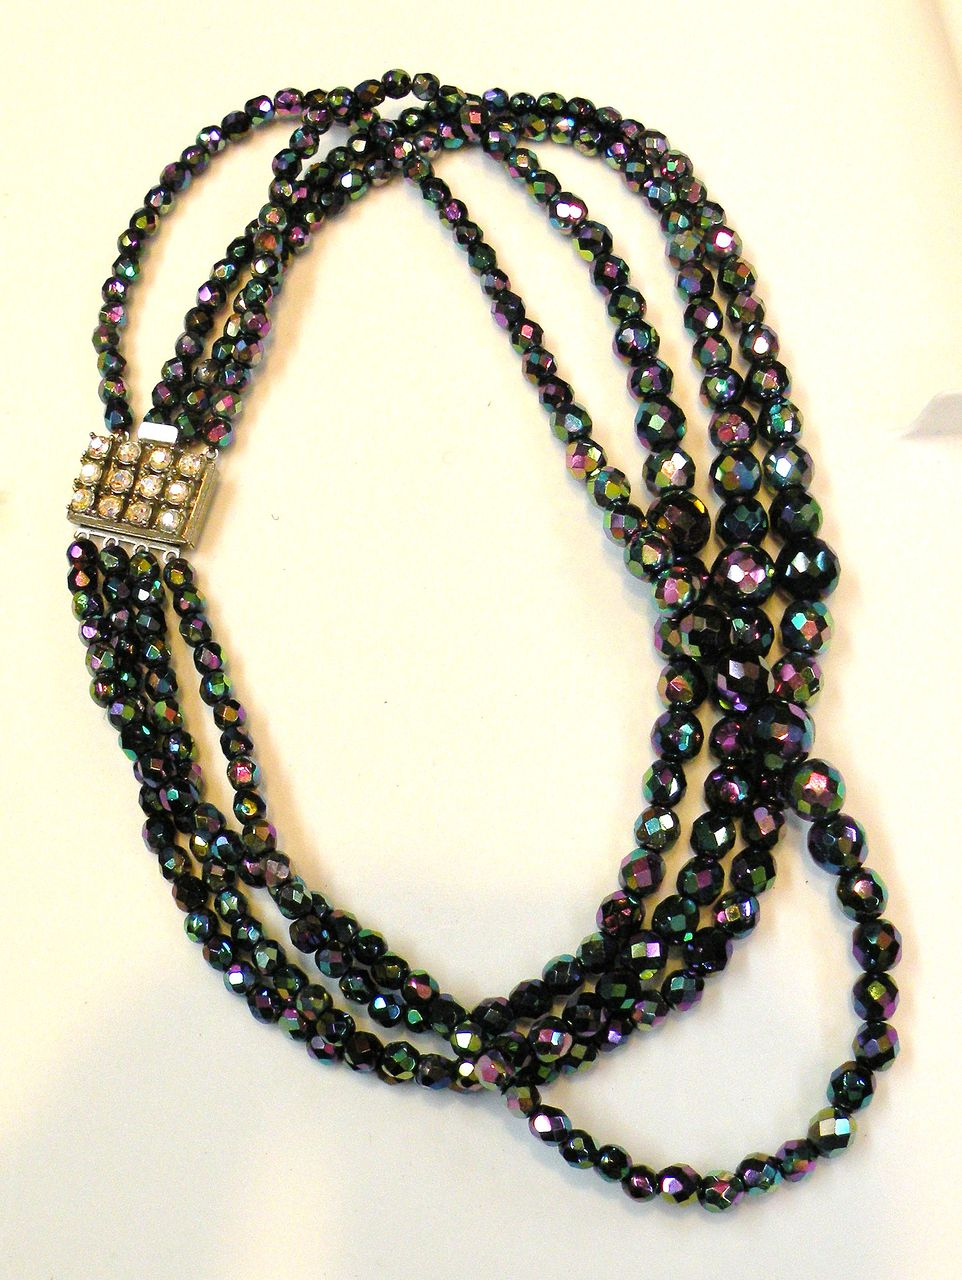 Four Strand Oil Slick Iridescent Graduated Bead Necklace with Rhinestone Clasp